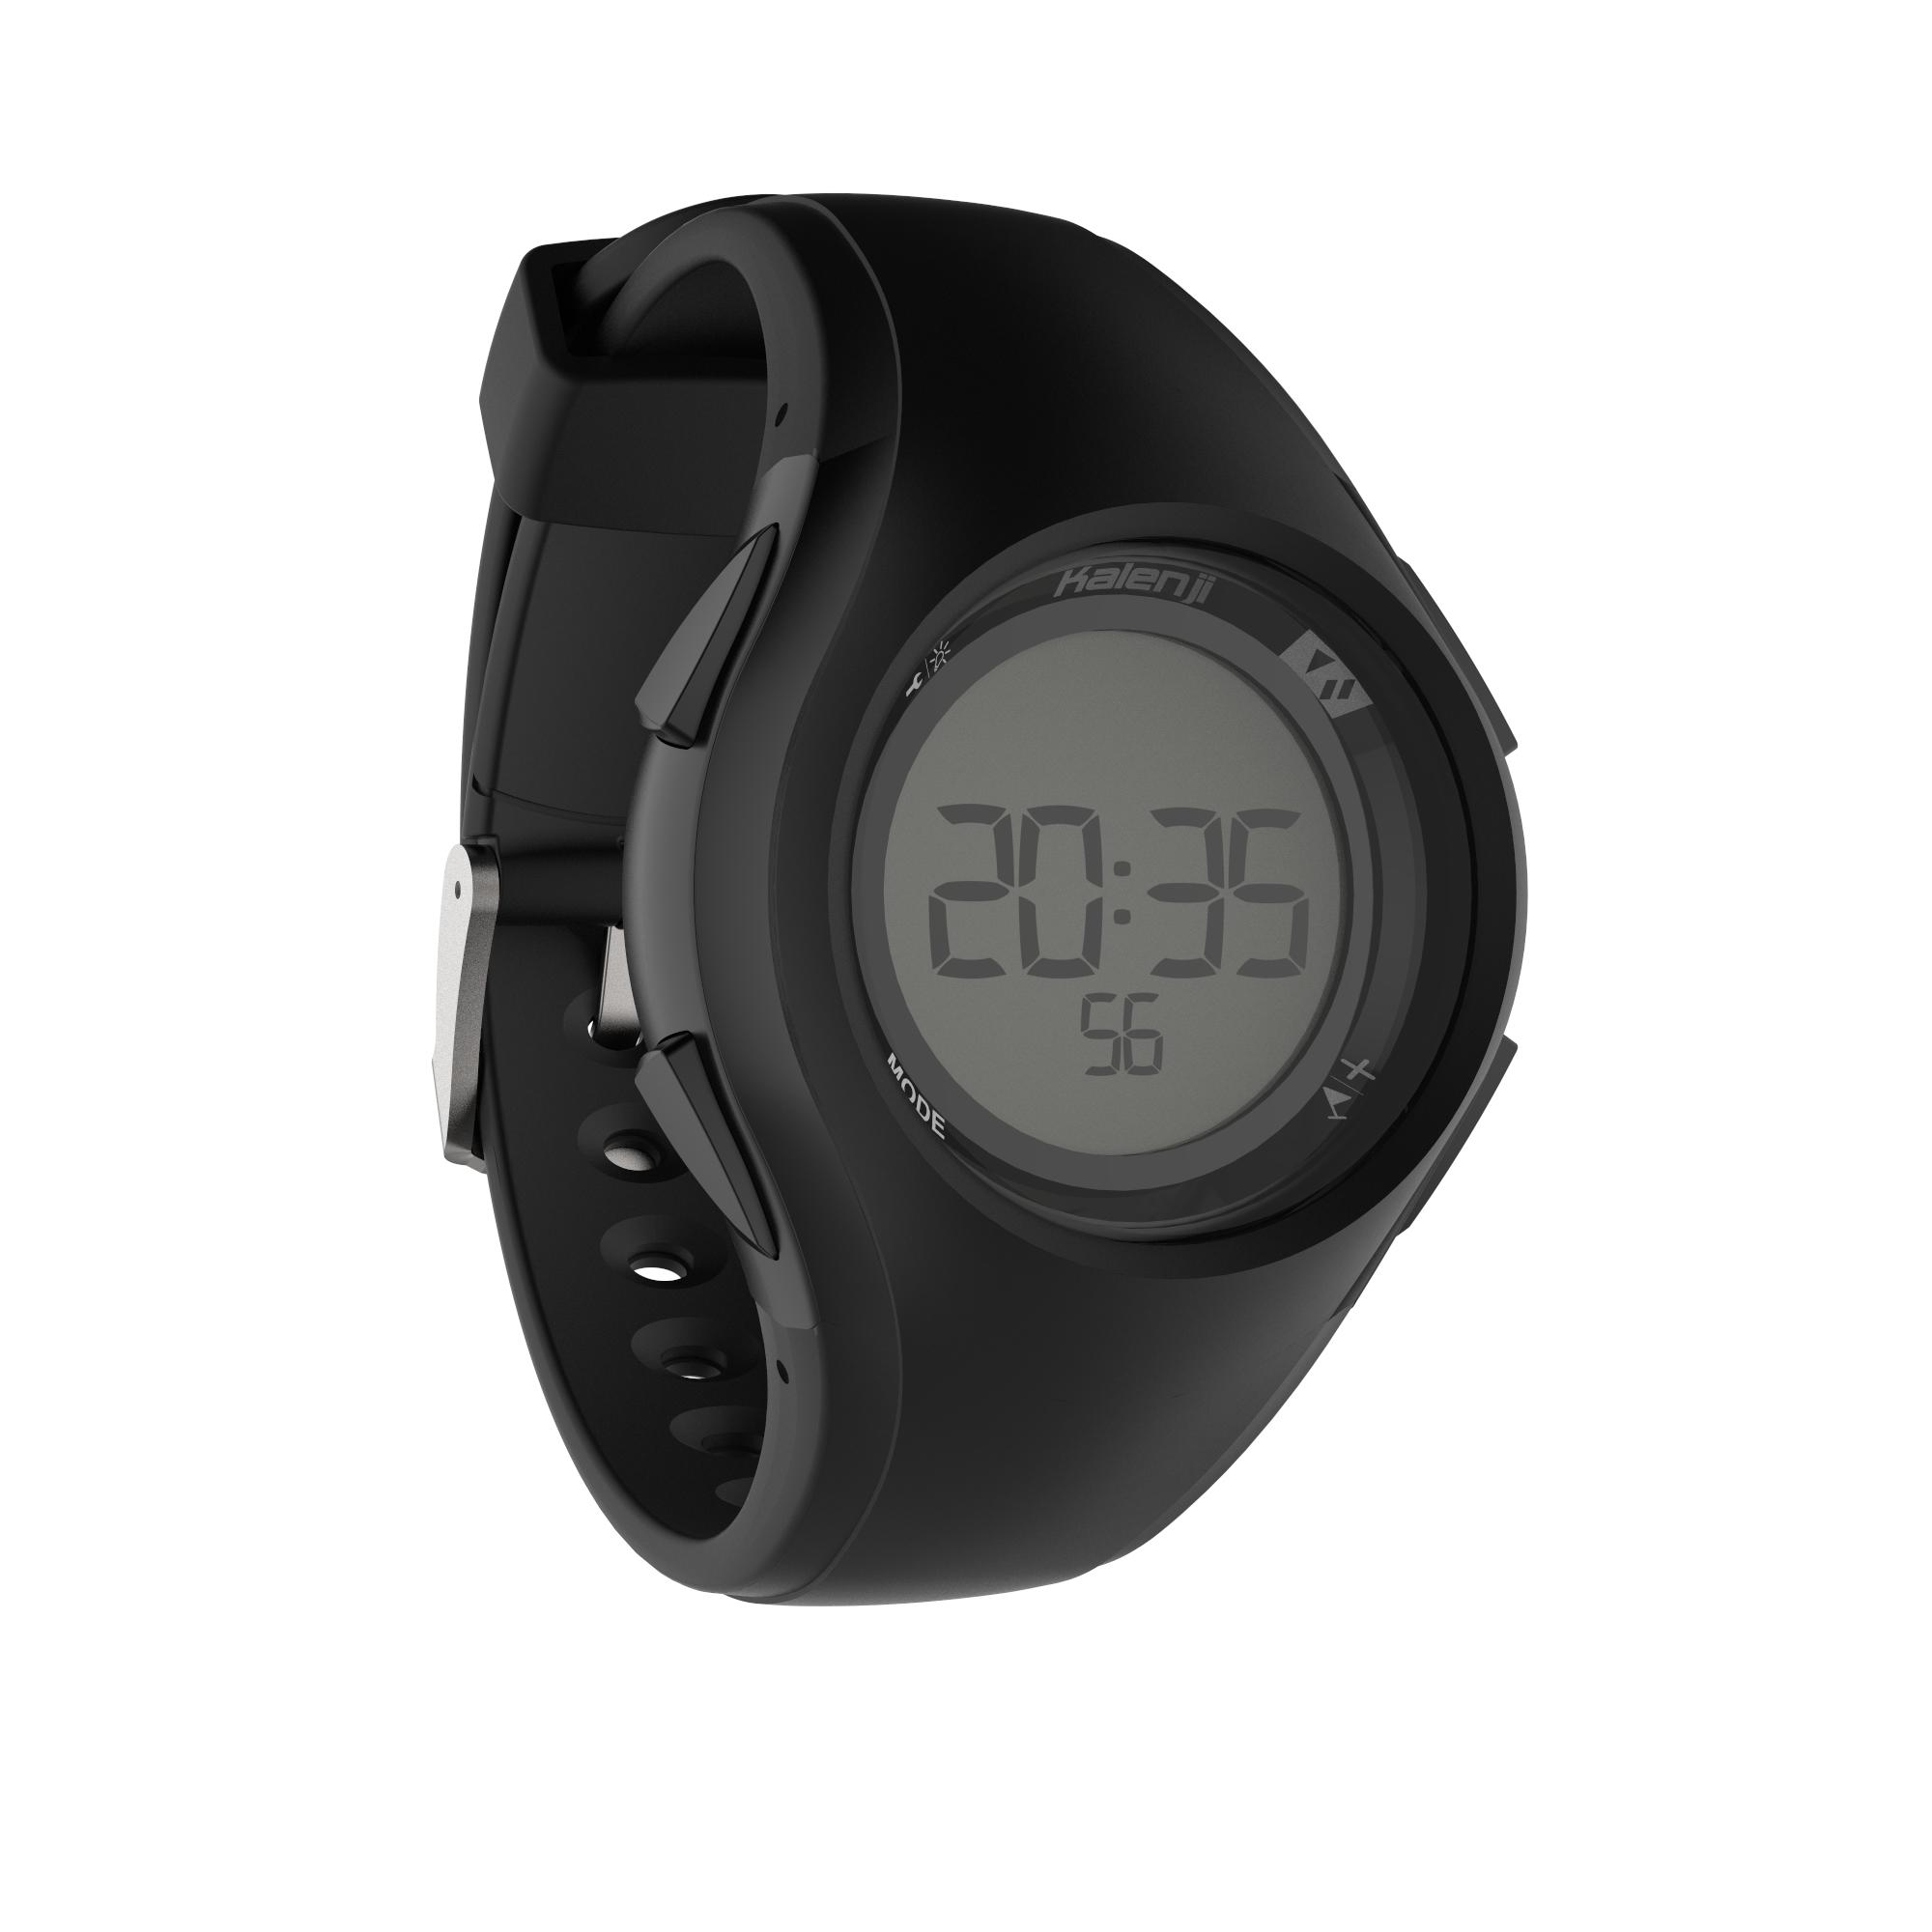 W200 M Digital Timer Sport Watch - black